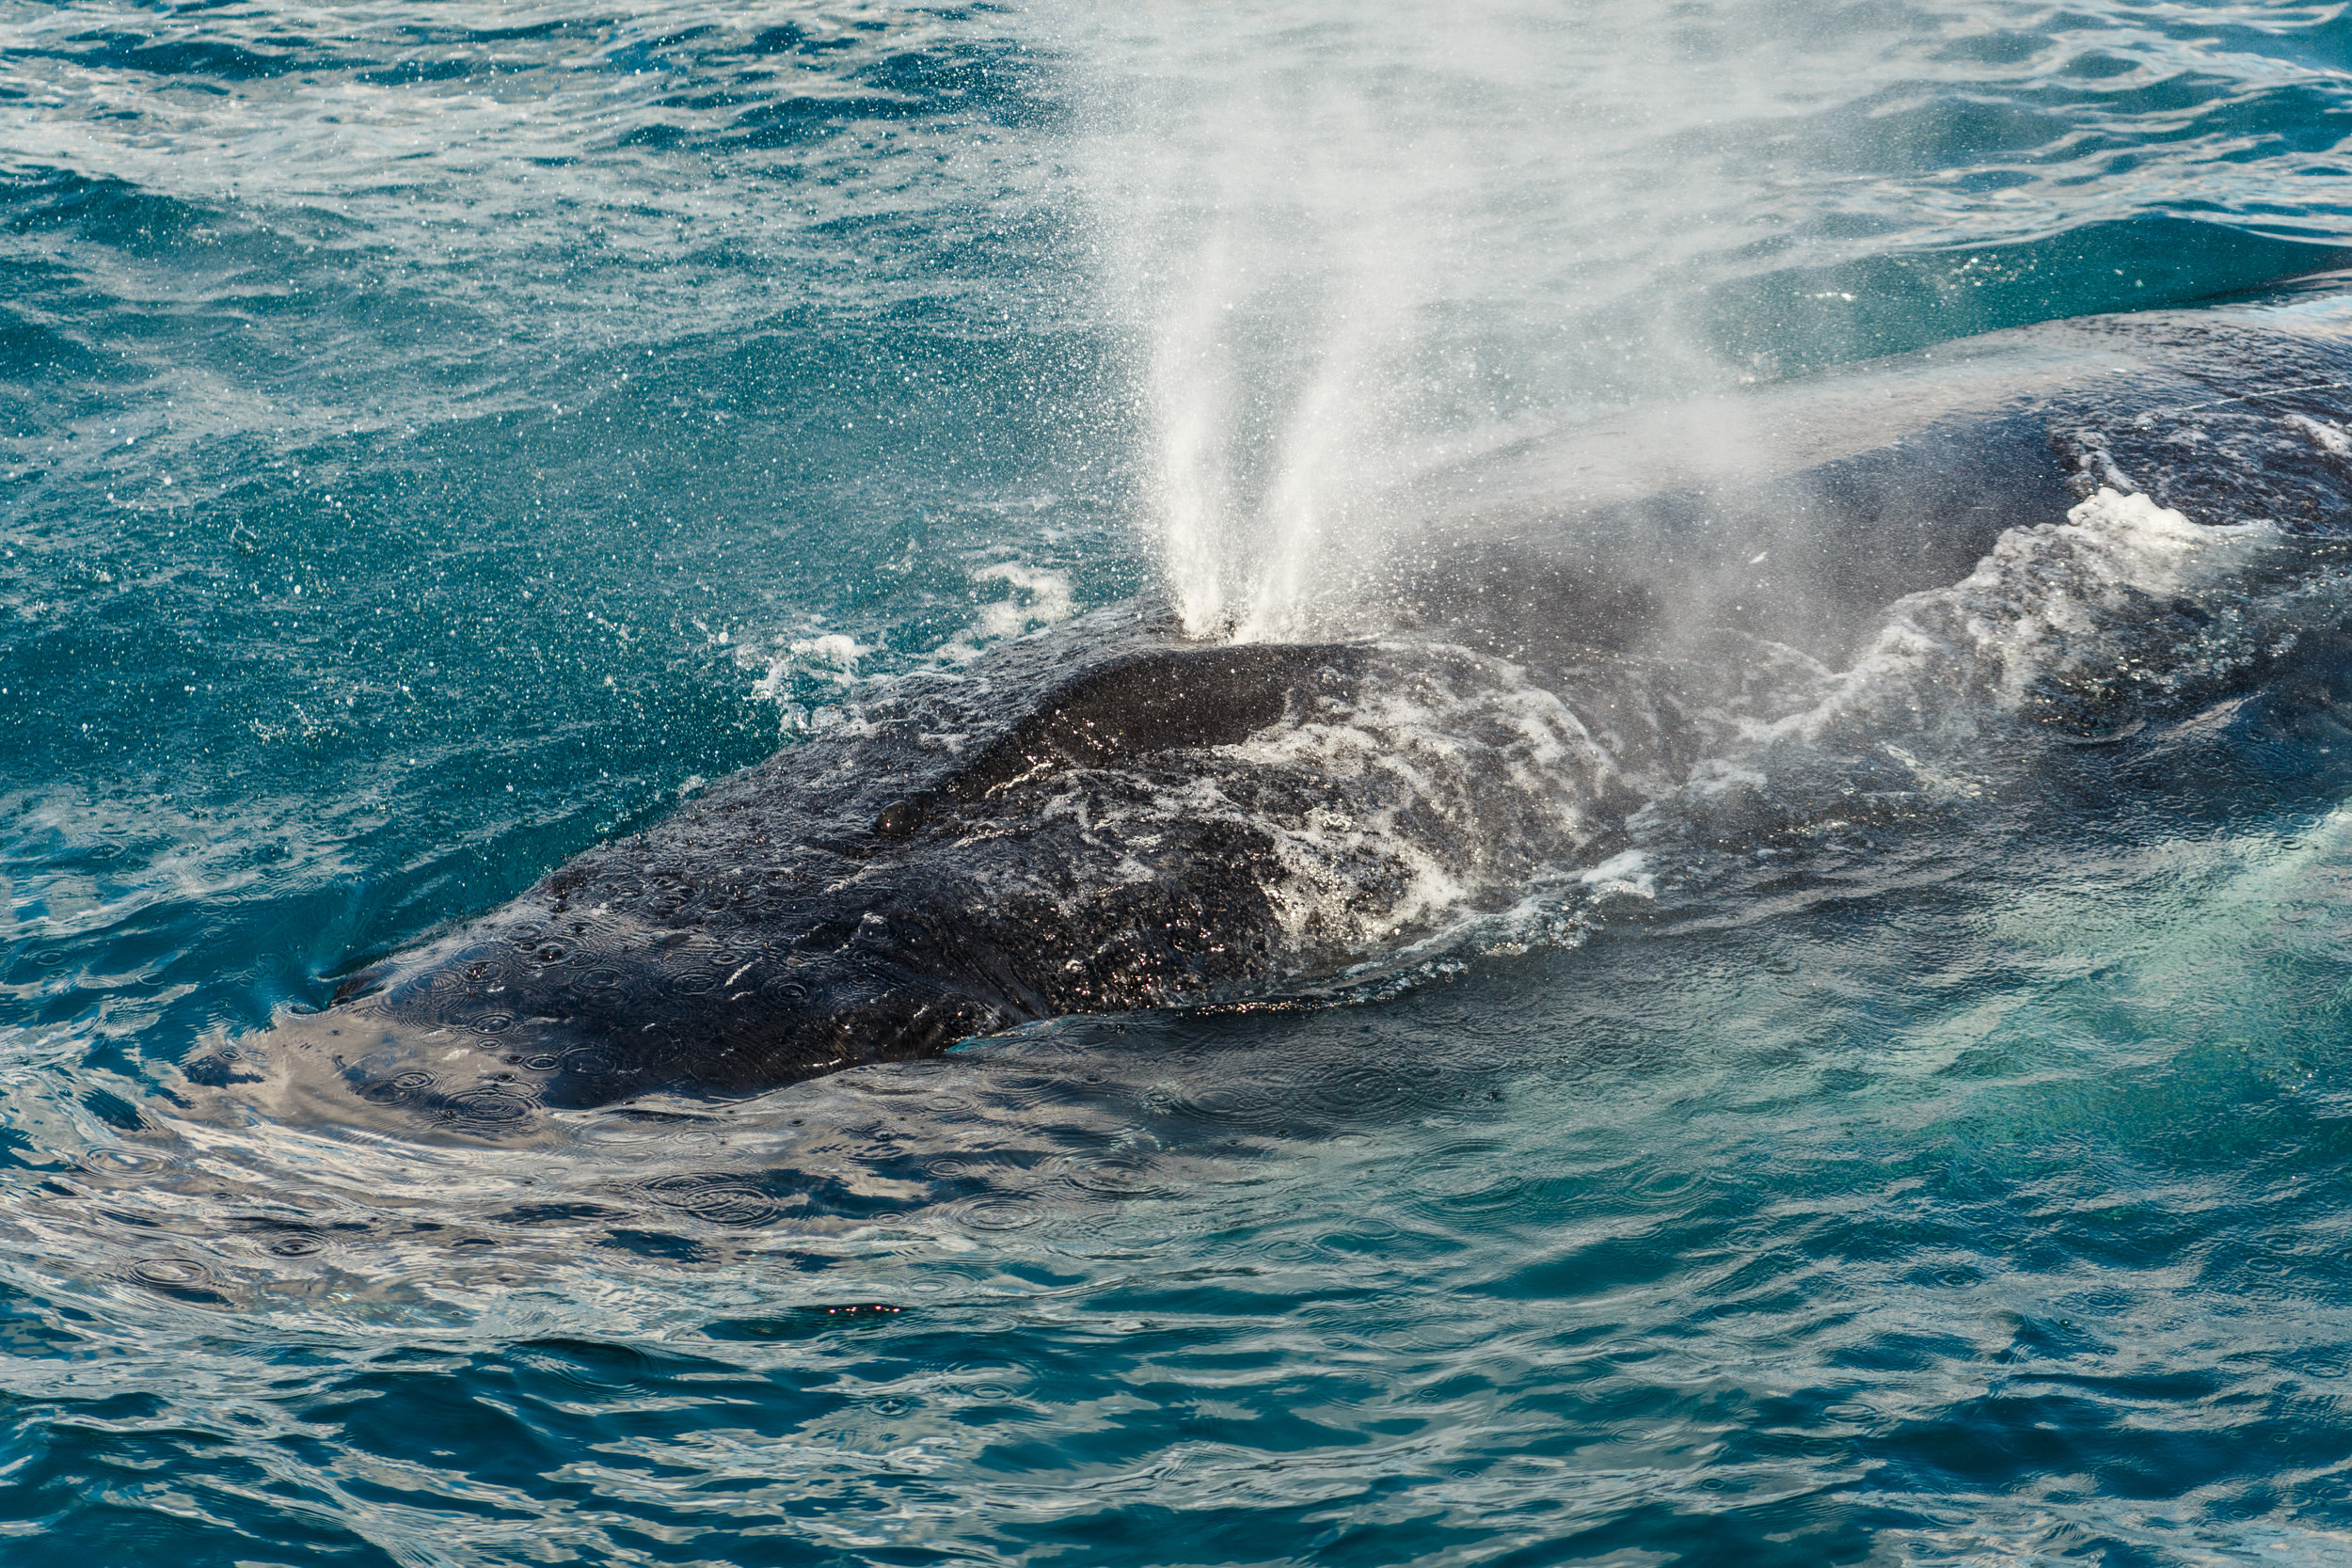 Blowhole spray from a humpback whale.